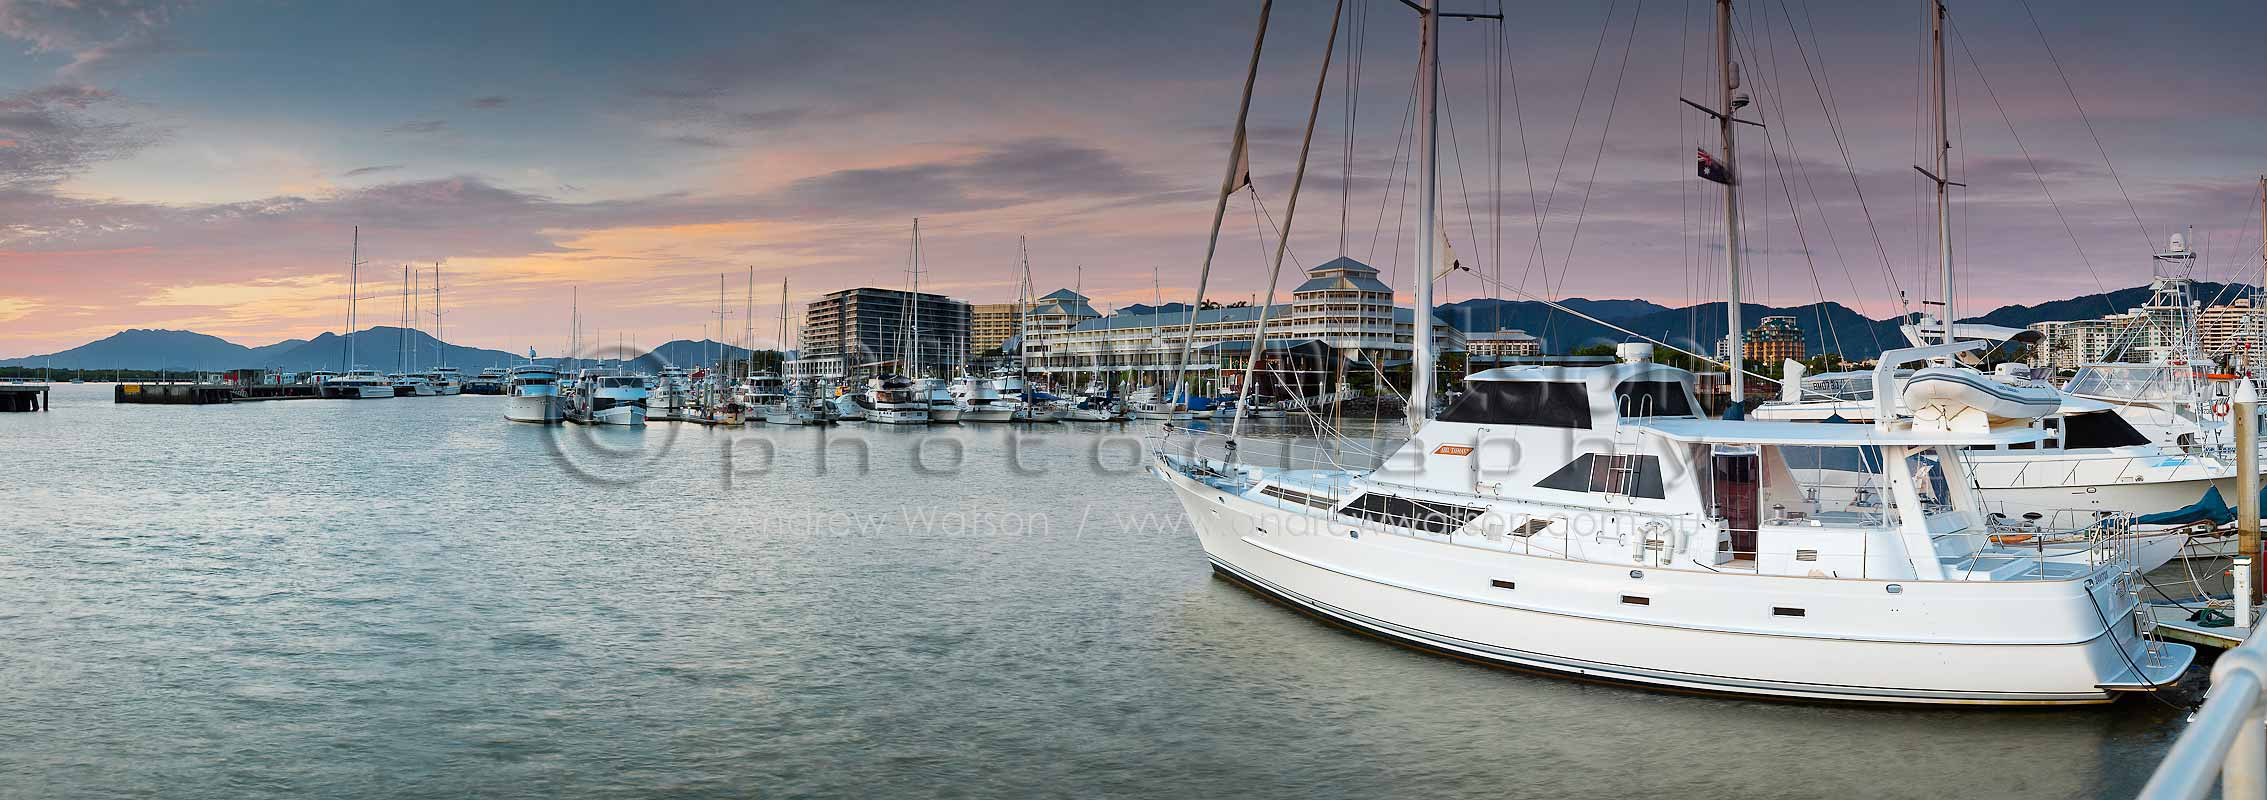 Superyachts in Marlin MarinaCairns, North QueenslandImage available for licensing or as a fine-art print... please enquire